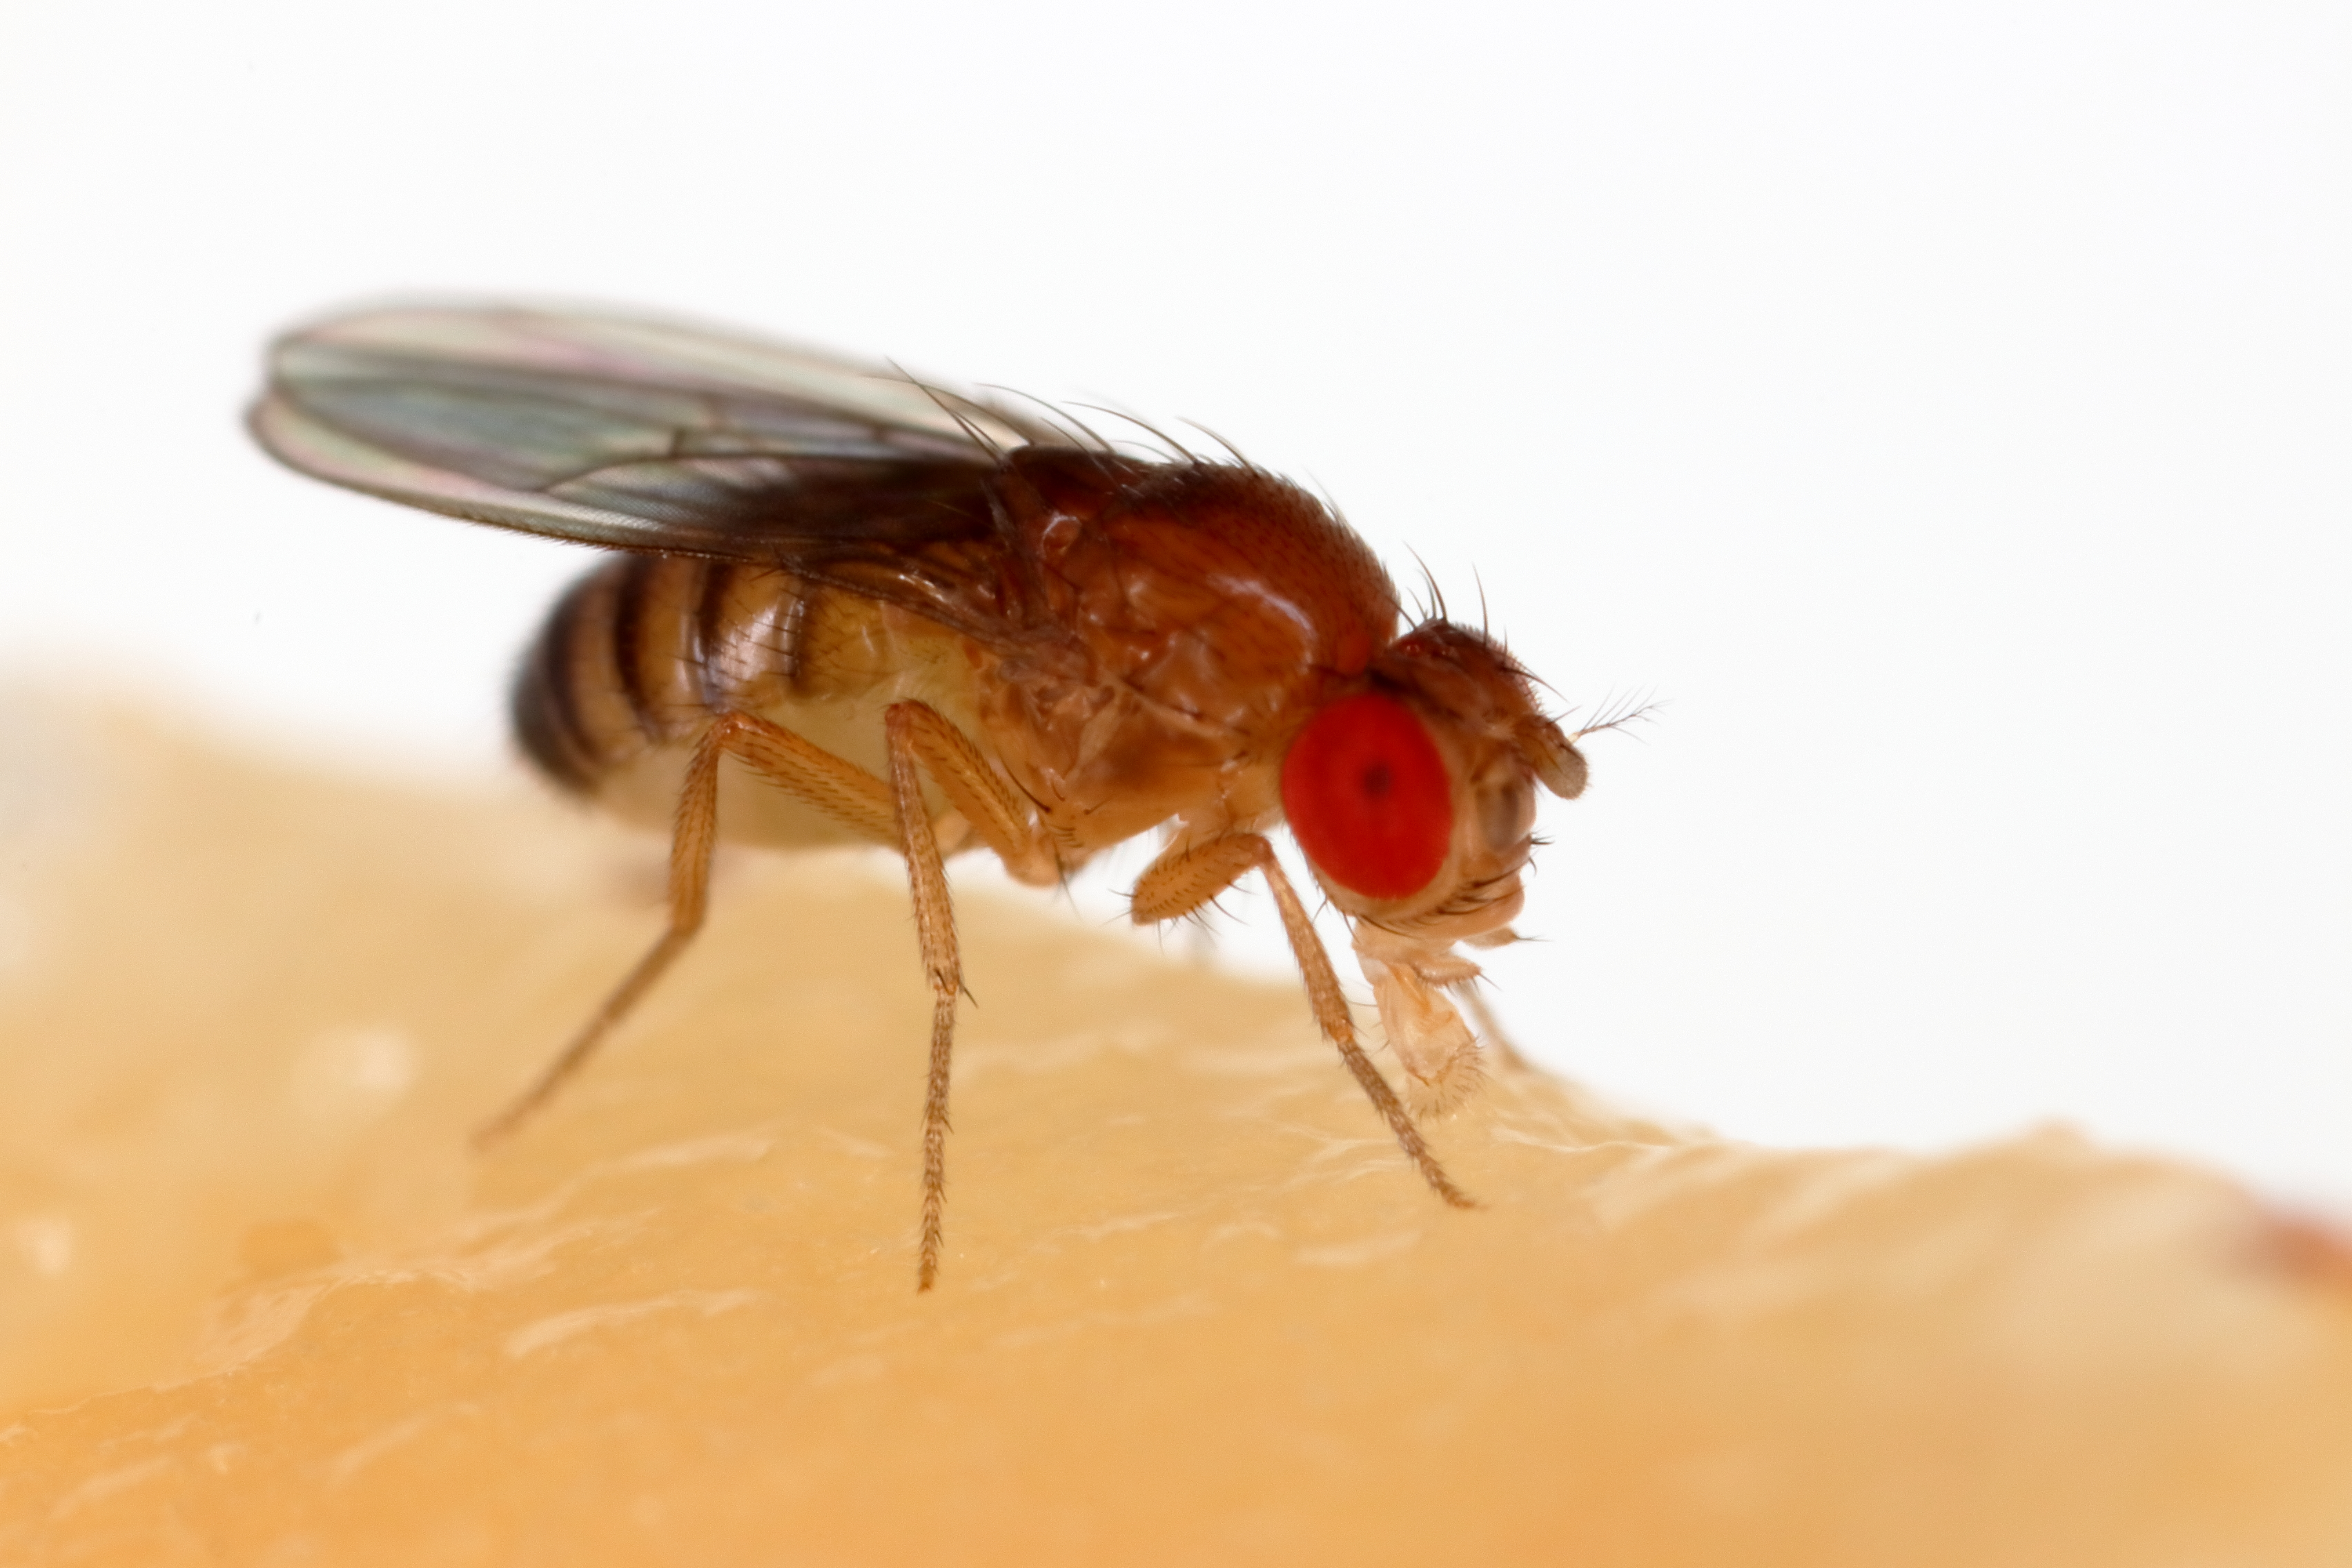 Drosophila melanogaster wikipedia